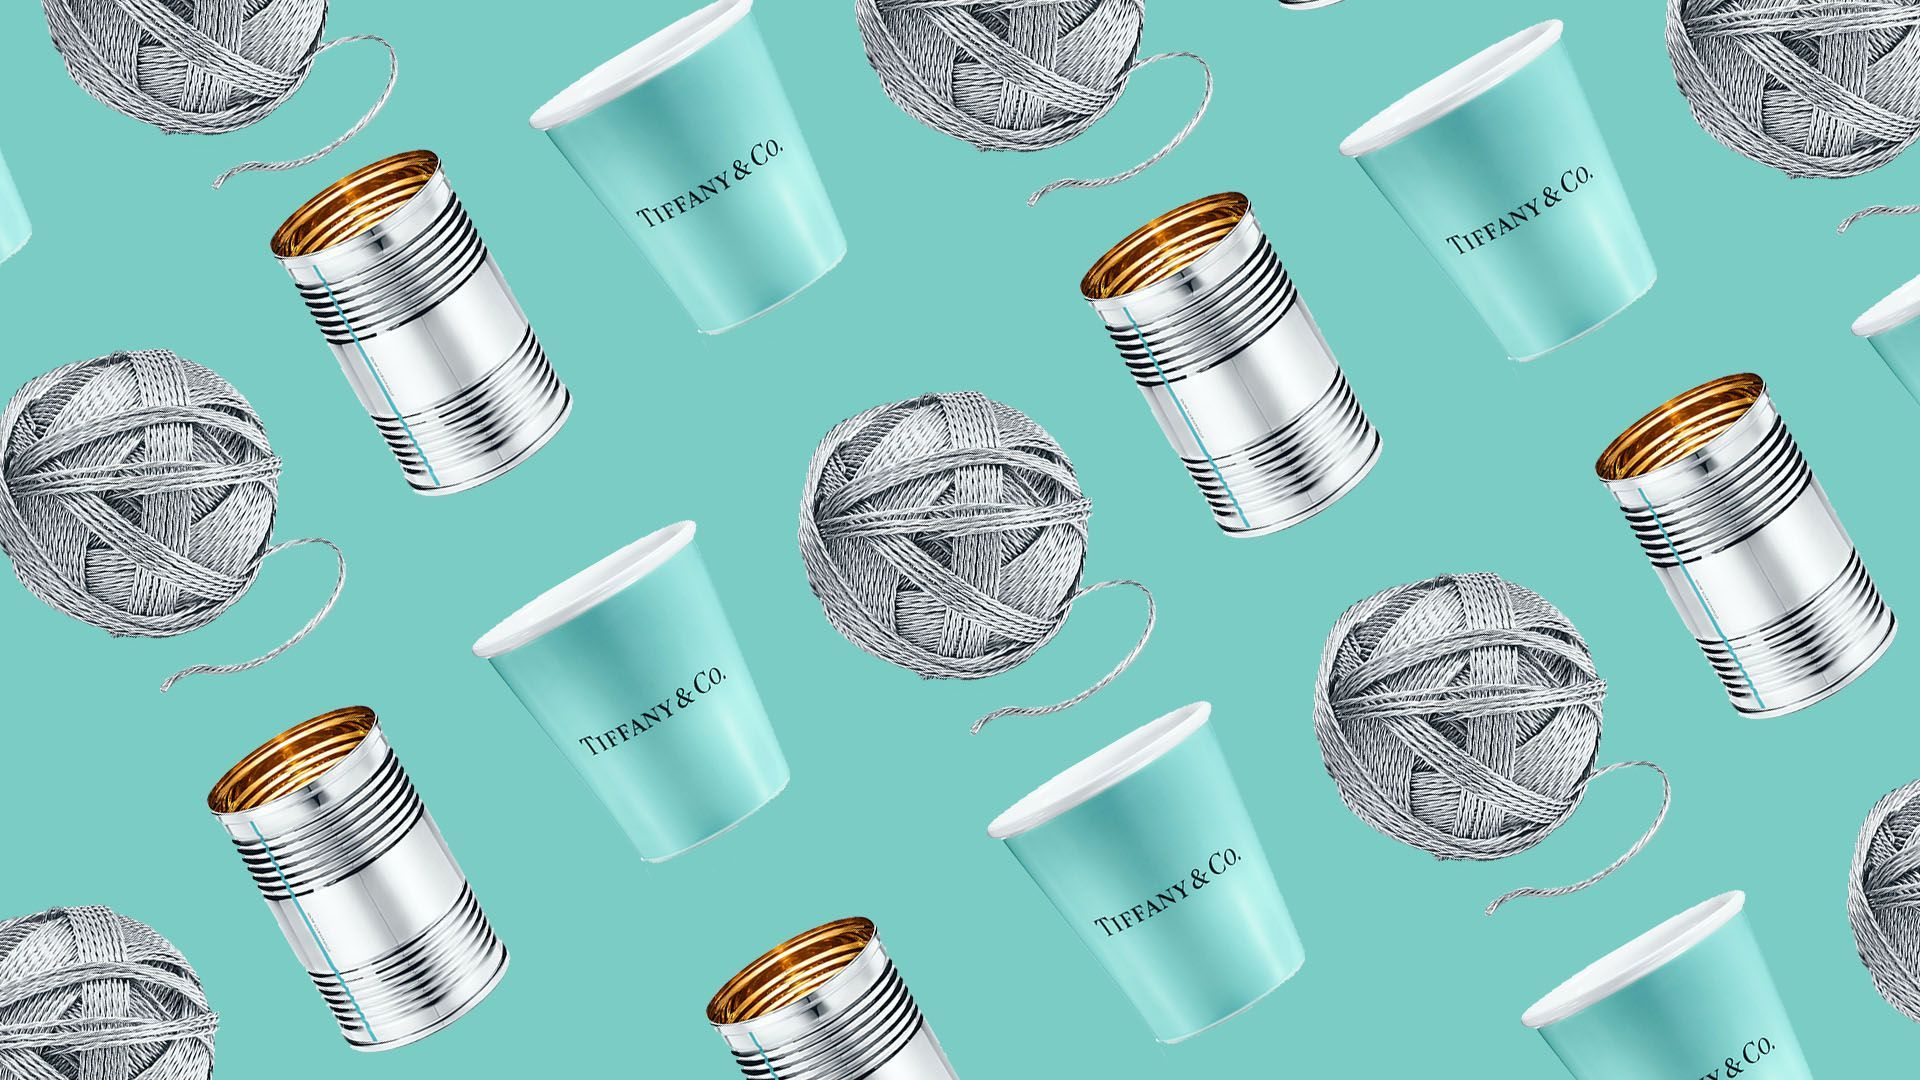 Cool Home Accessories Products Tiffany Amp Co Launched An Outrageously Indulgent Home And Accessories Line Tiffany Co Product Launch Everyday Objects